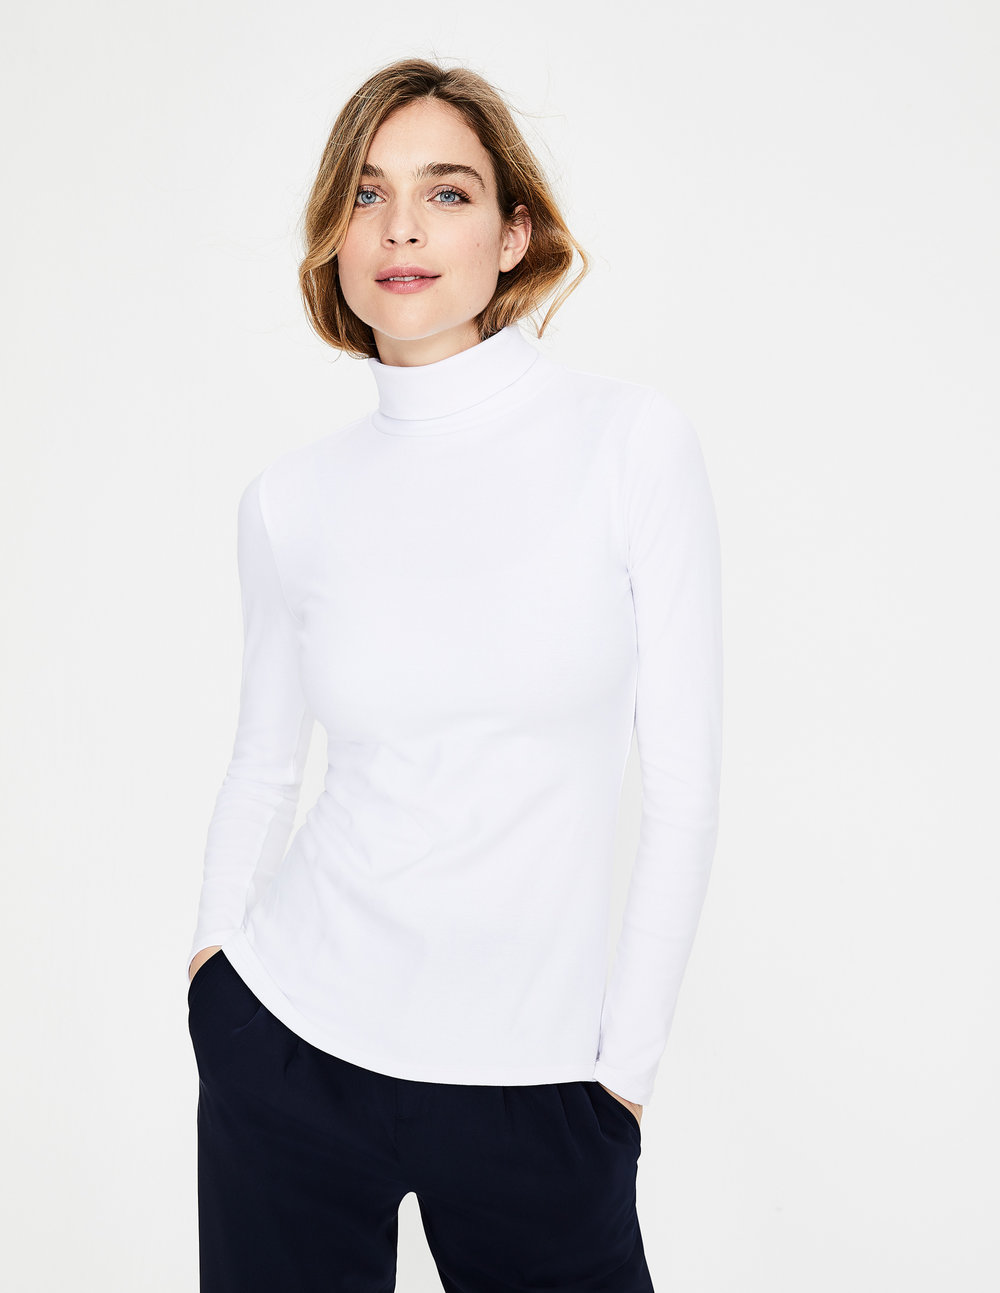 ESSENTIAL ROLL NECK TEE. Available in multiple colors and stripes. Boden. $38.